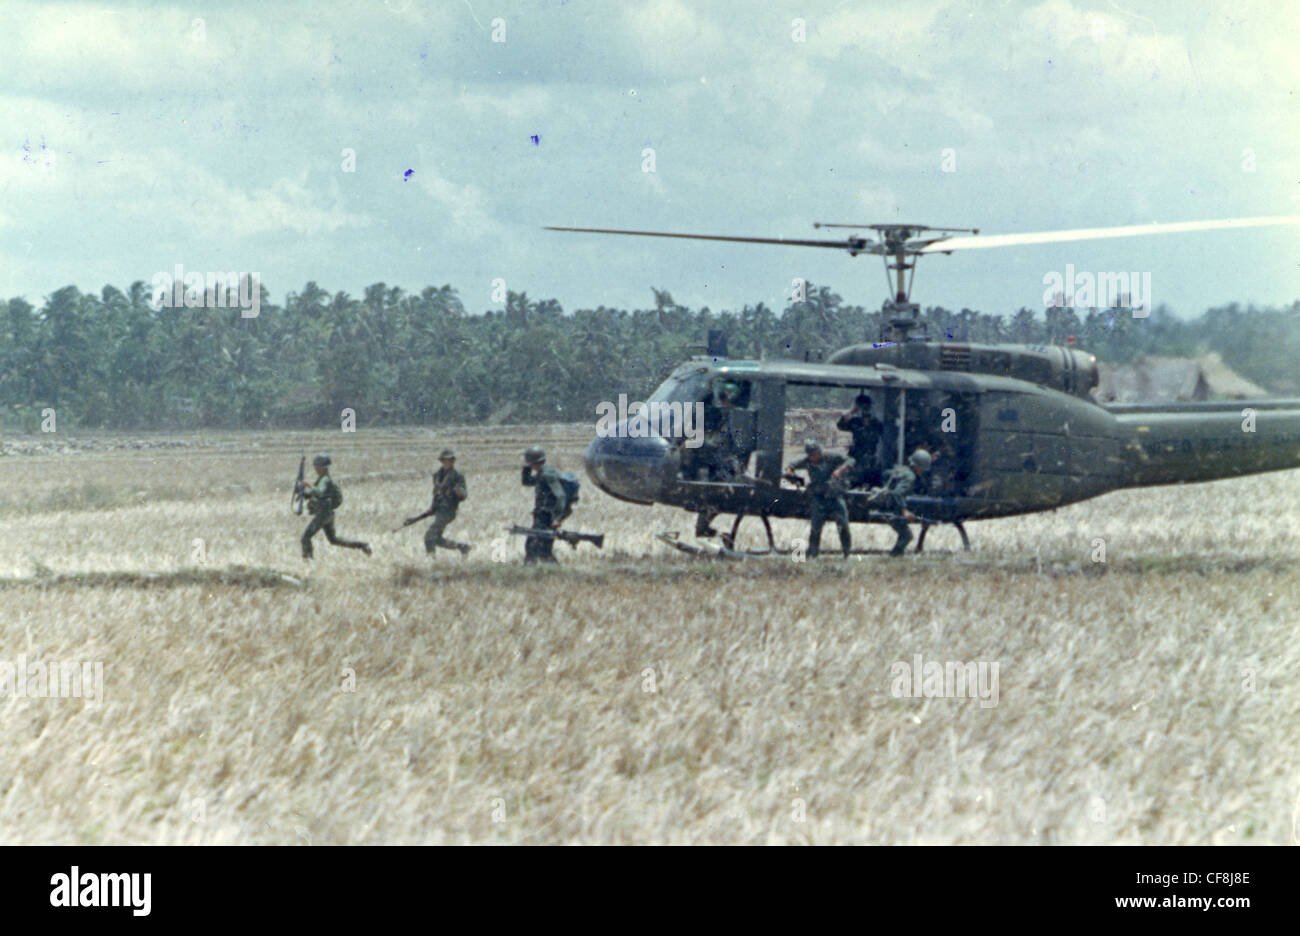 members of Co. D, 3rd BN, 506th Inf, 101st Airborne Division combat assault UH-1D helicopter 1970 huey helicopter - Stock Image